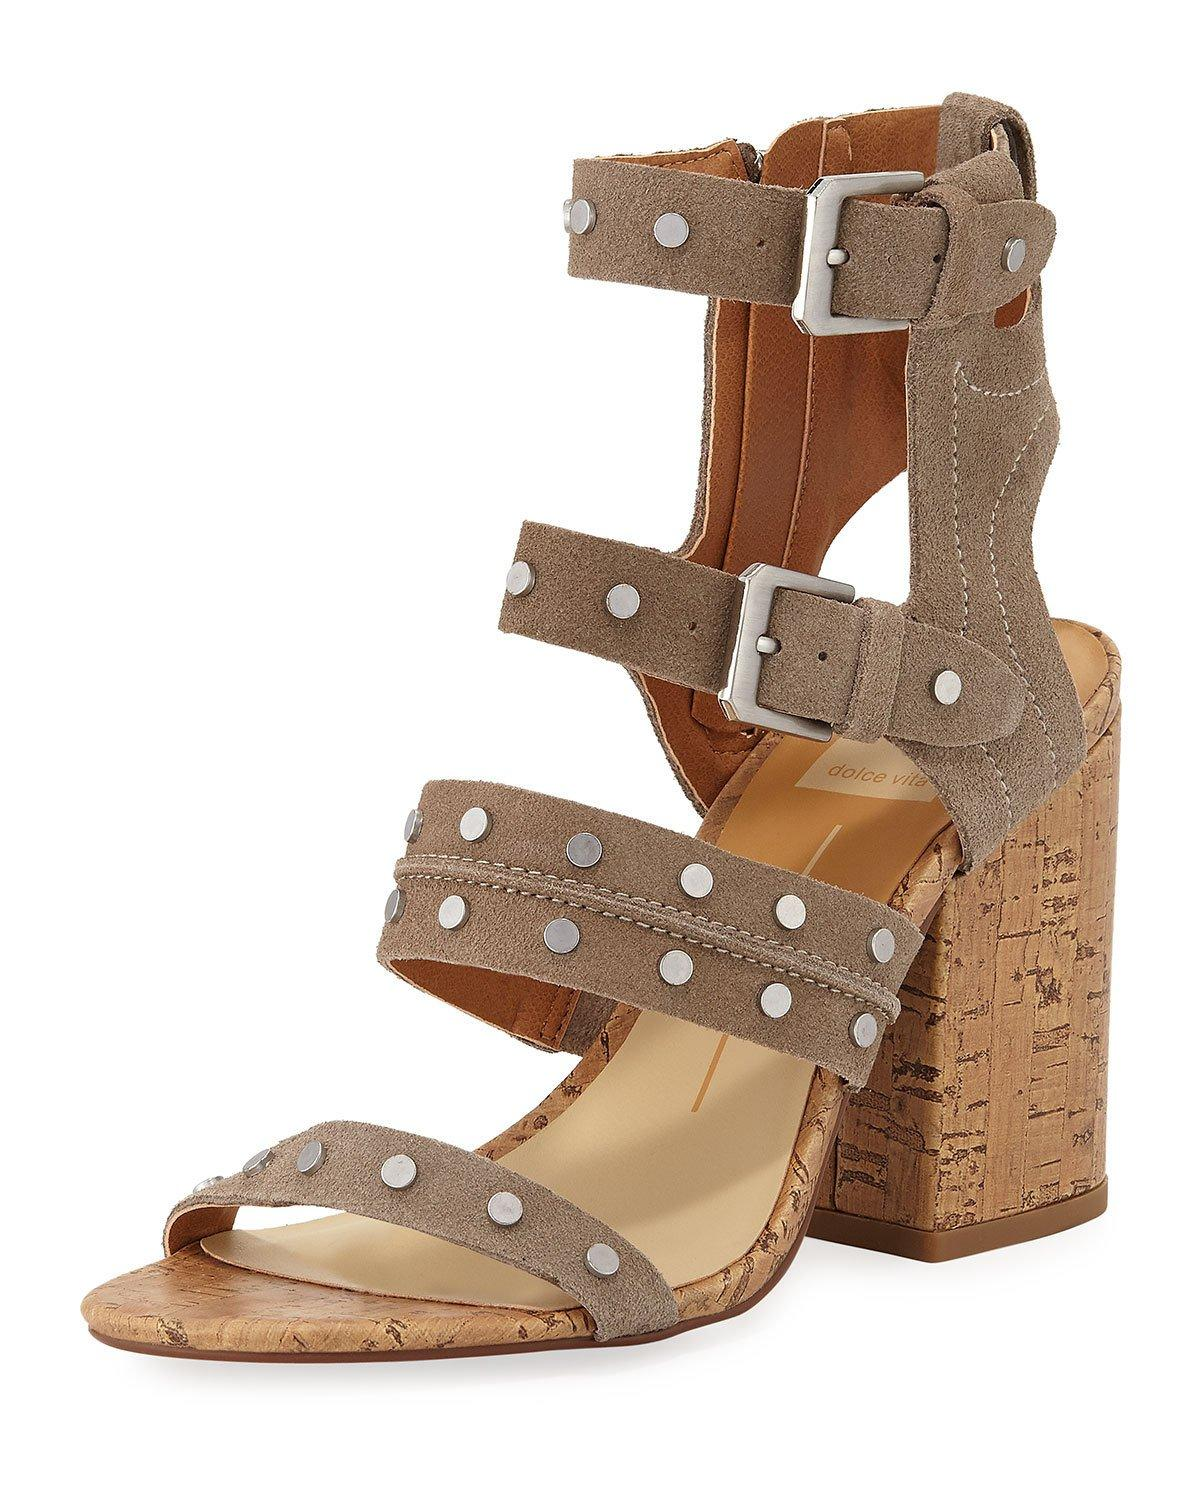 e777311b4c5d Dolce Vita Women s Eddie Suede High Block Heel Gladiator Sandals In Taupe